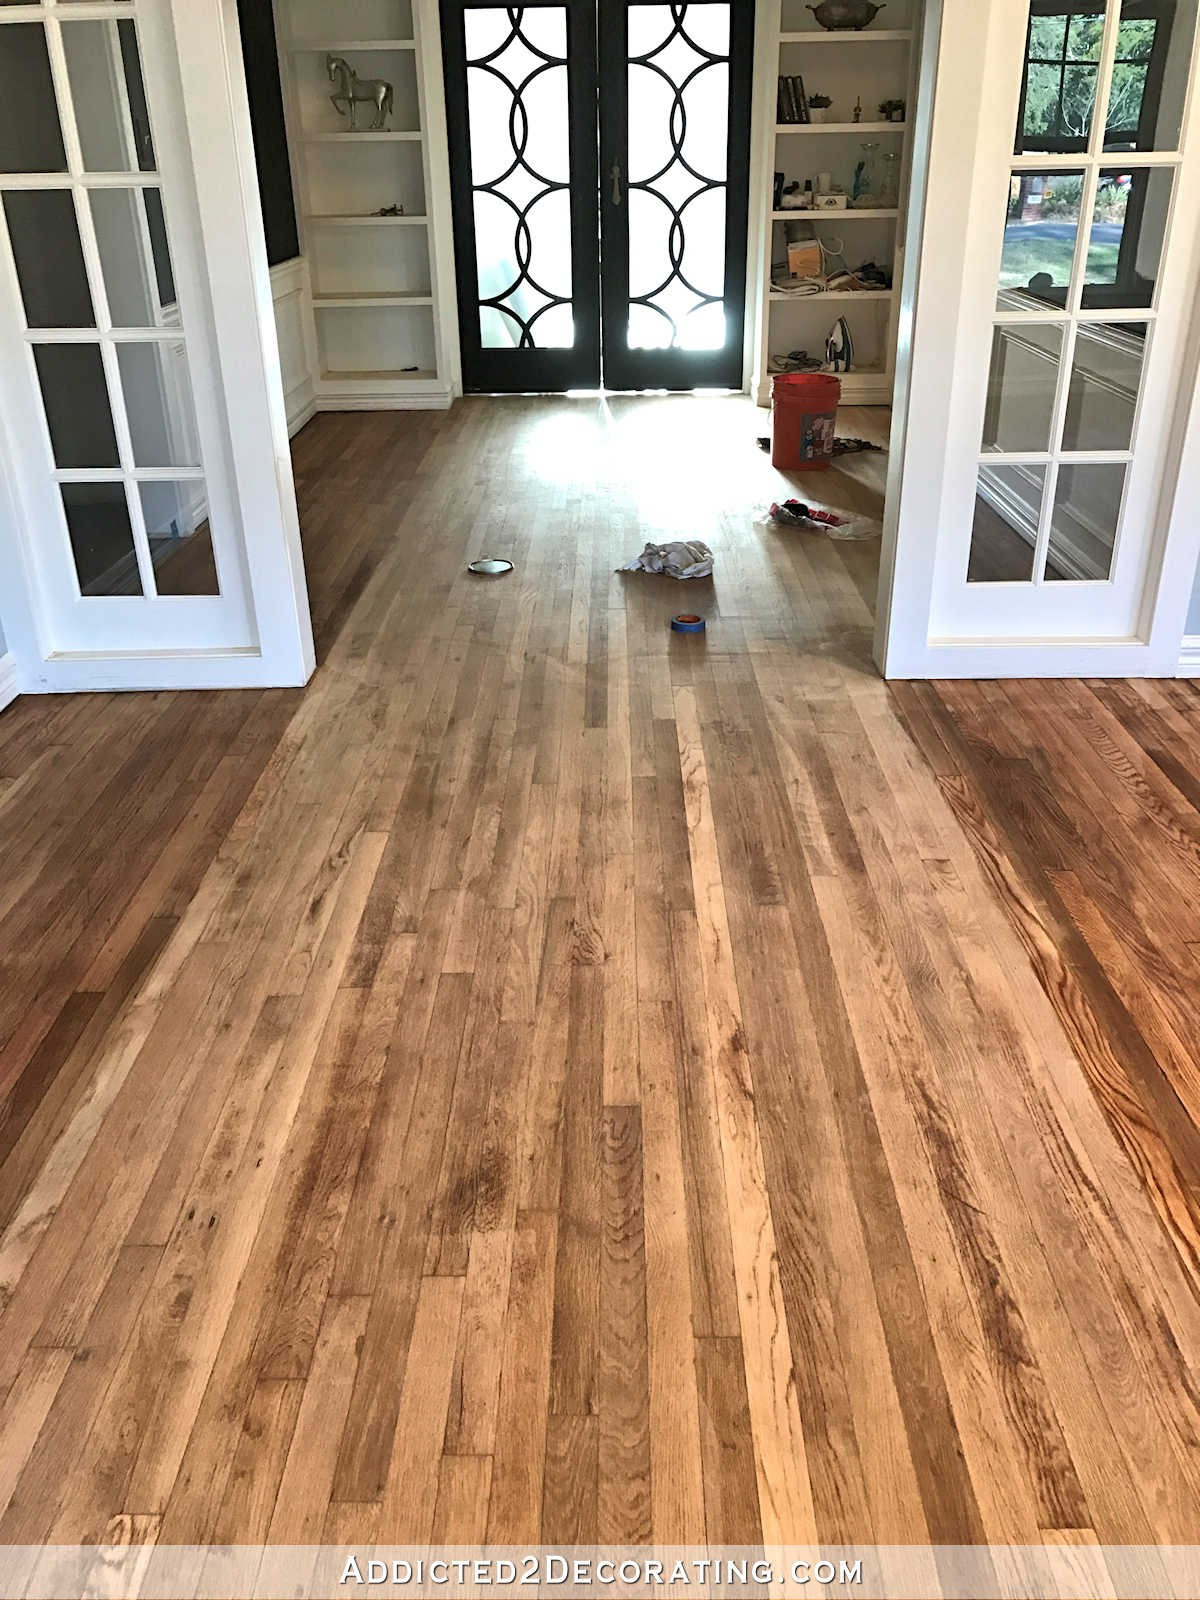 27 Stylish Sanding Hardwood Floors With An Orbital Sander